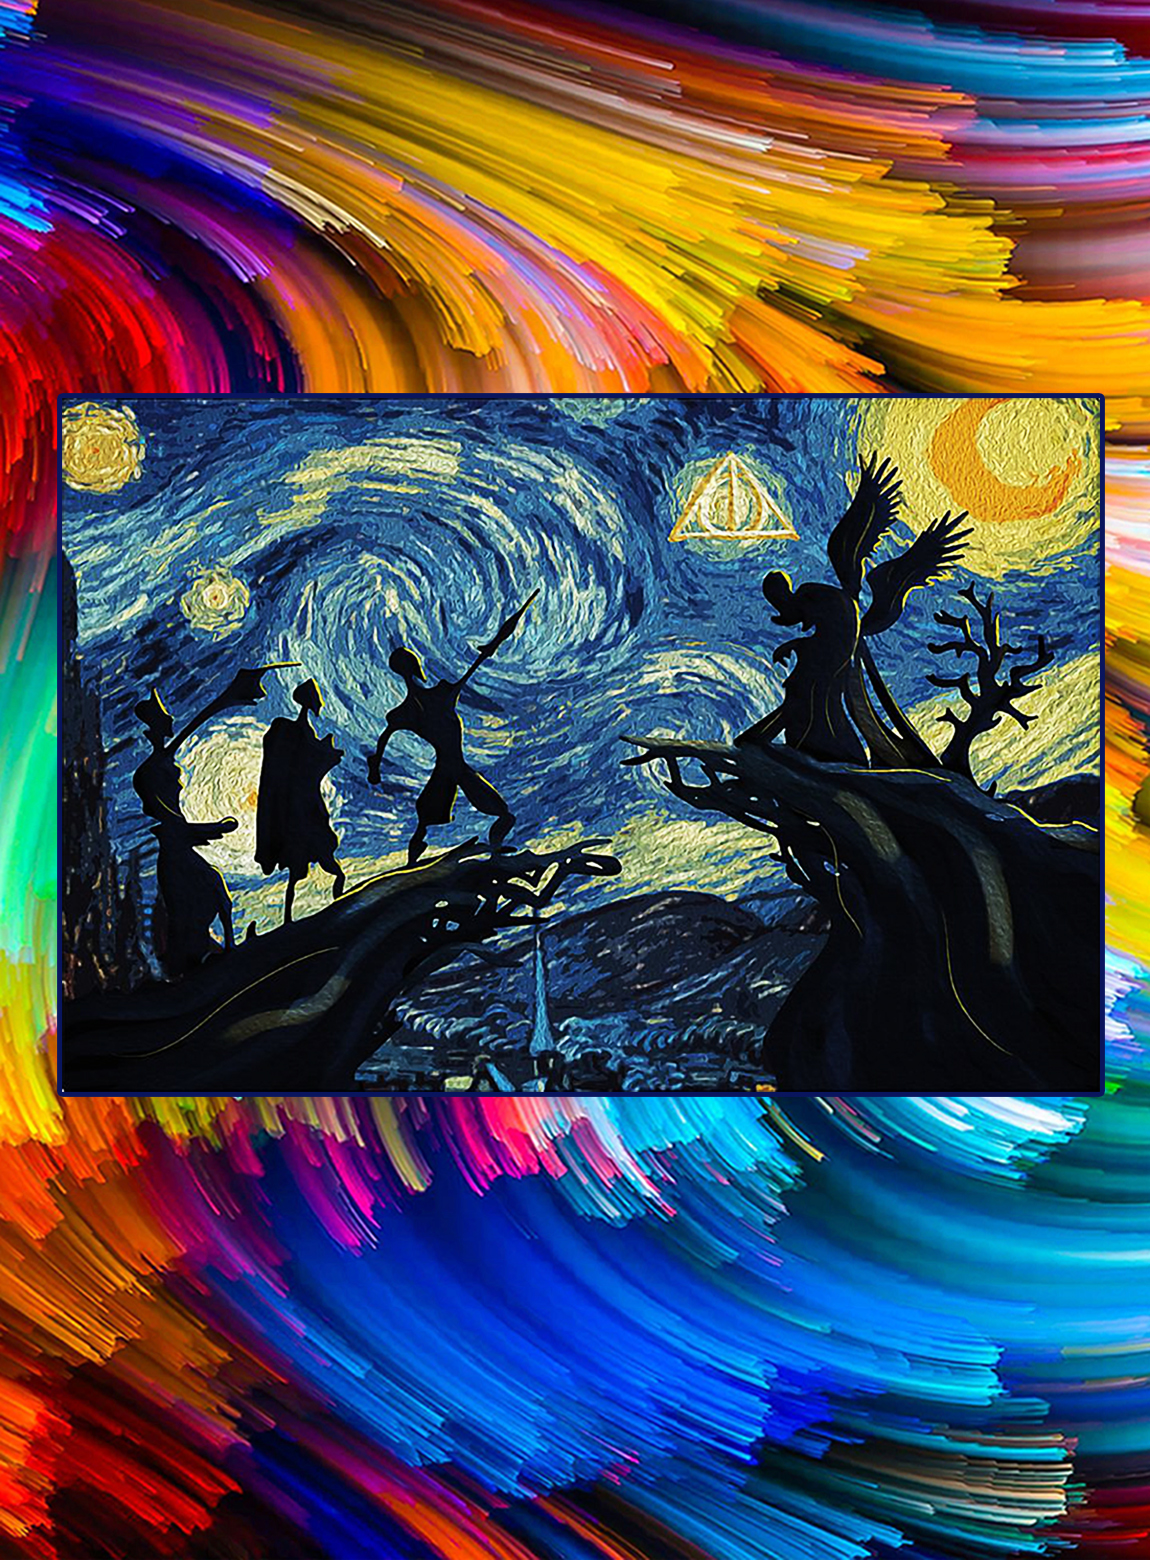 Starry night Deathly hallows harry potter poster - A3